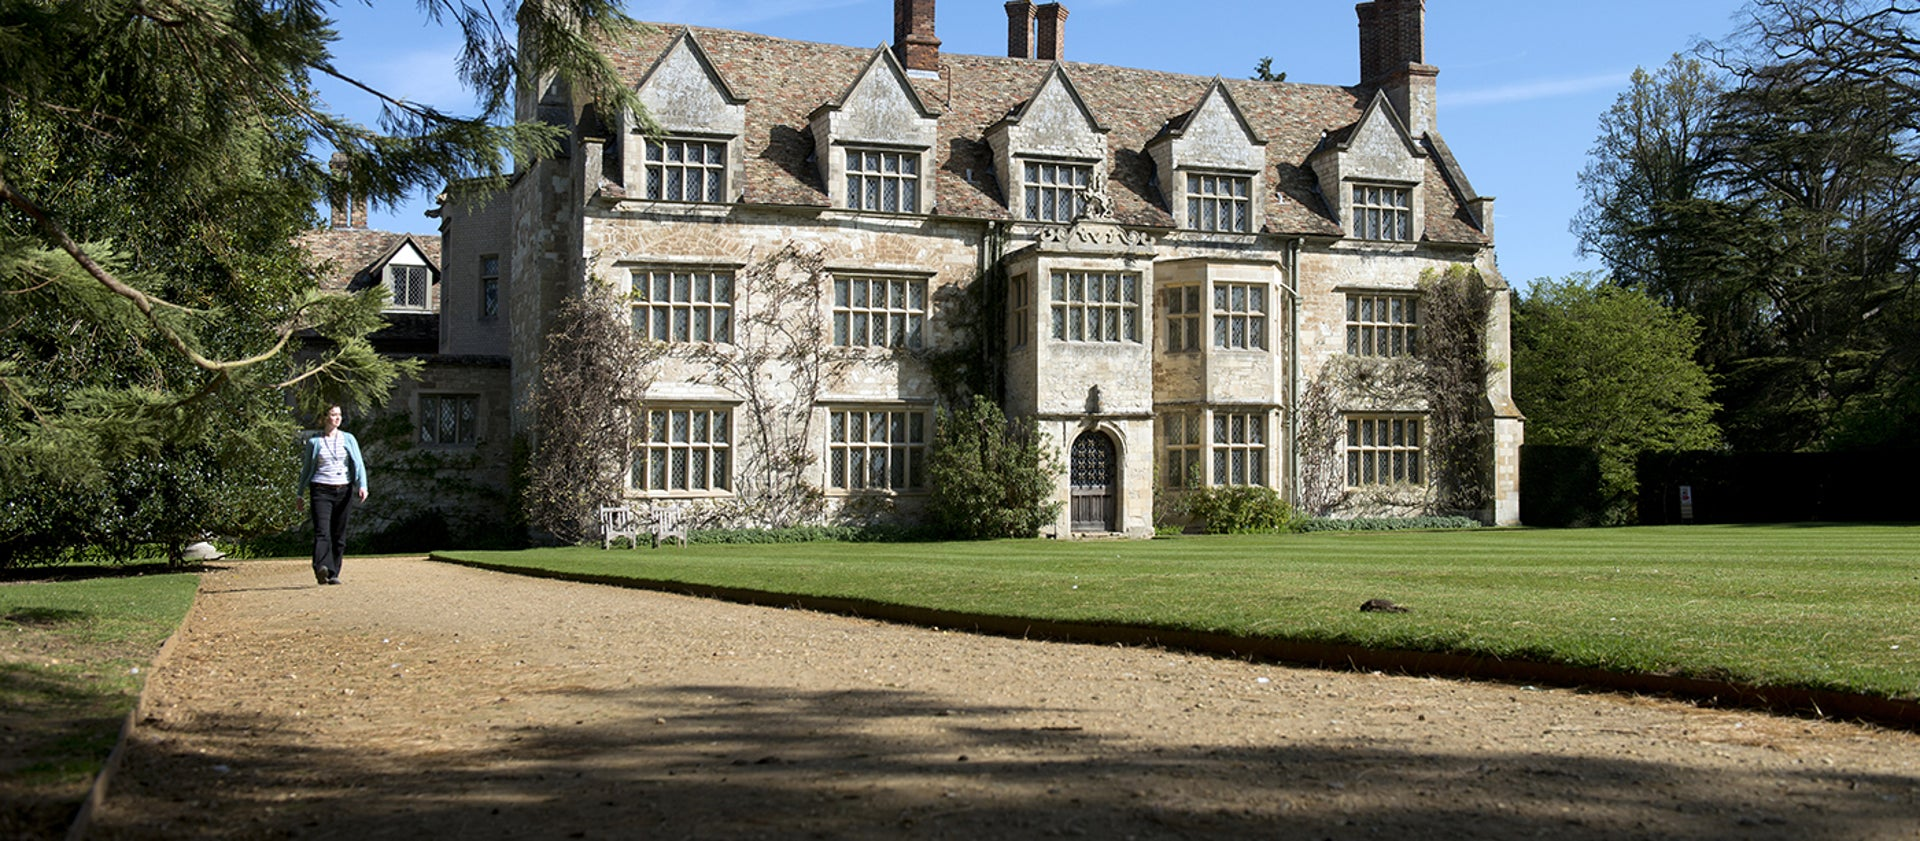 The Royston and Saffron Walden Association | National TrustVisit our Facebook pageVisit our Twitter